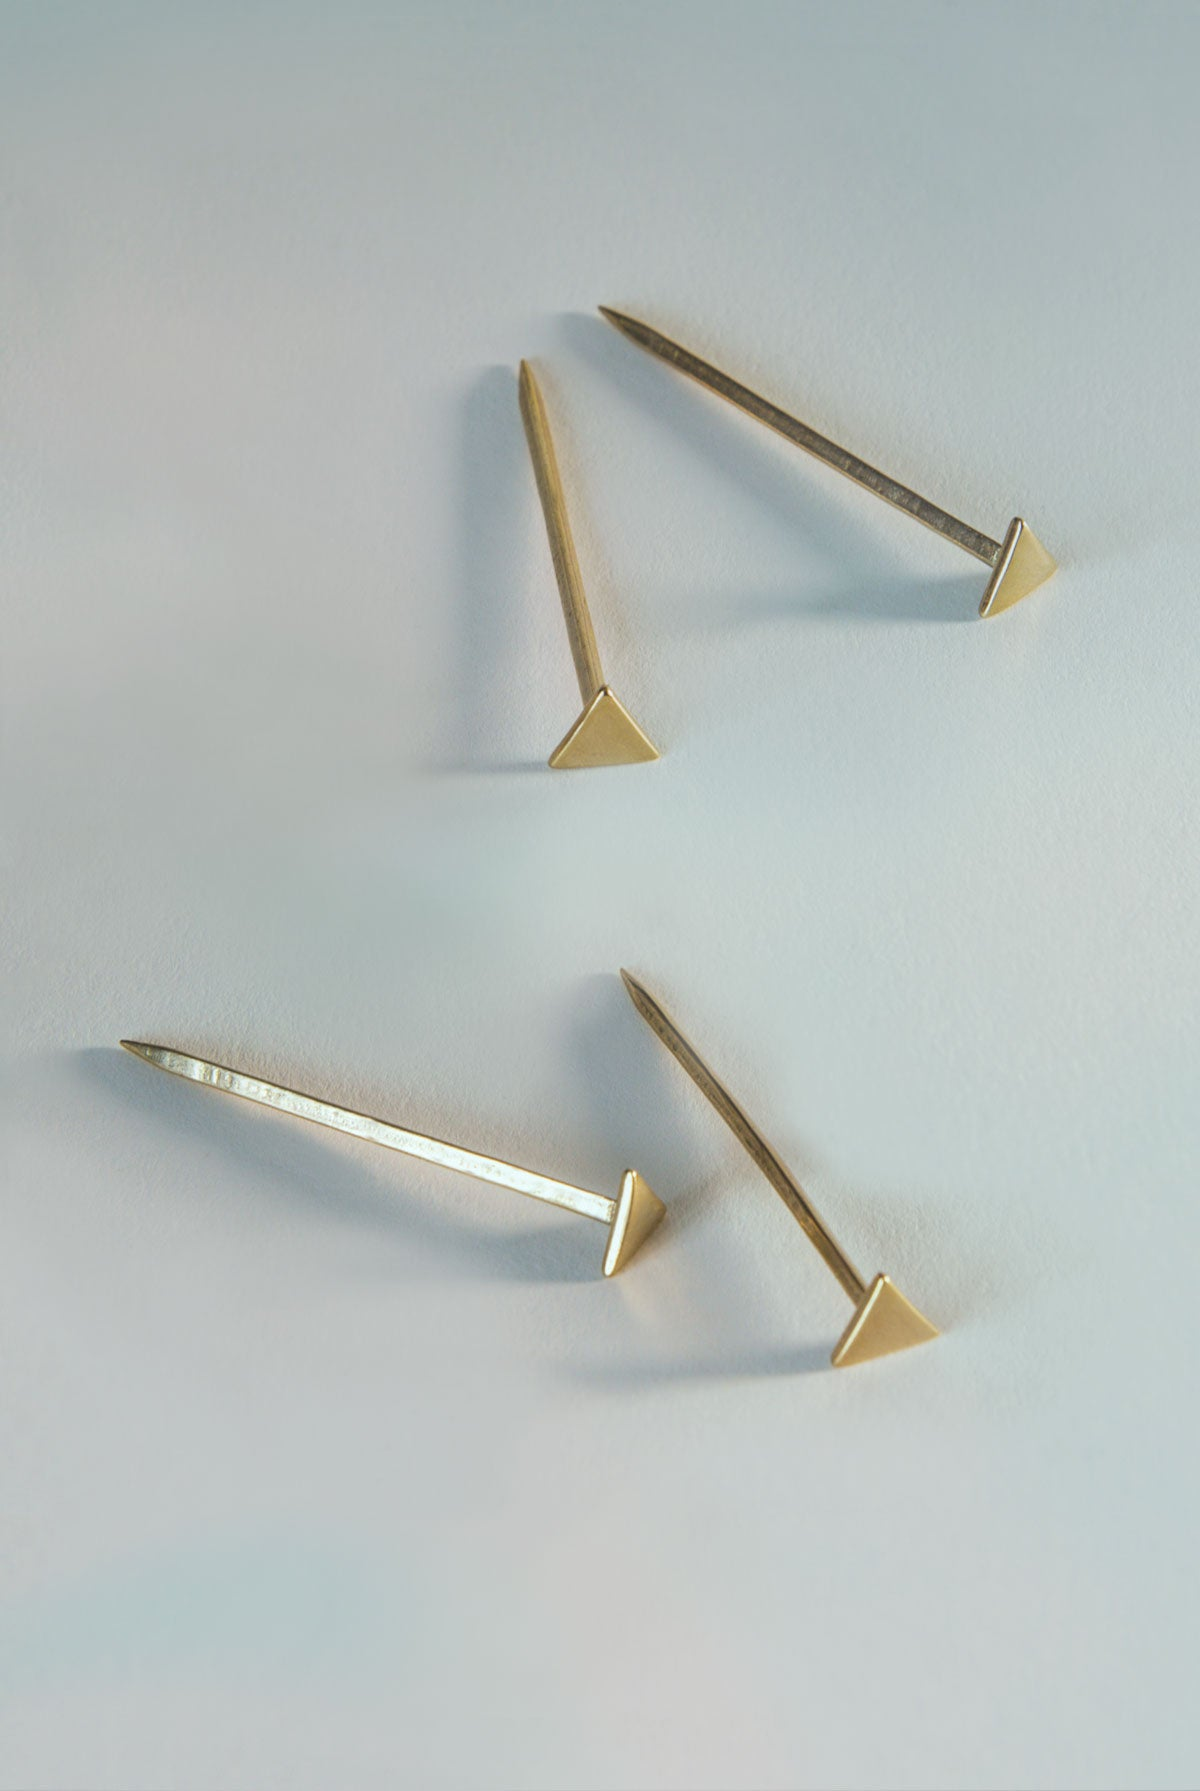 Equilateral Nails in Bronze